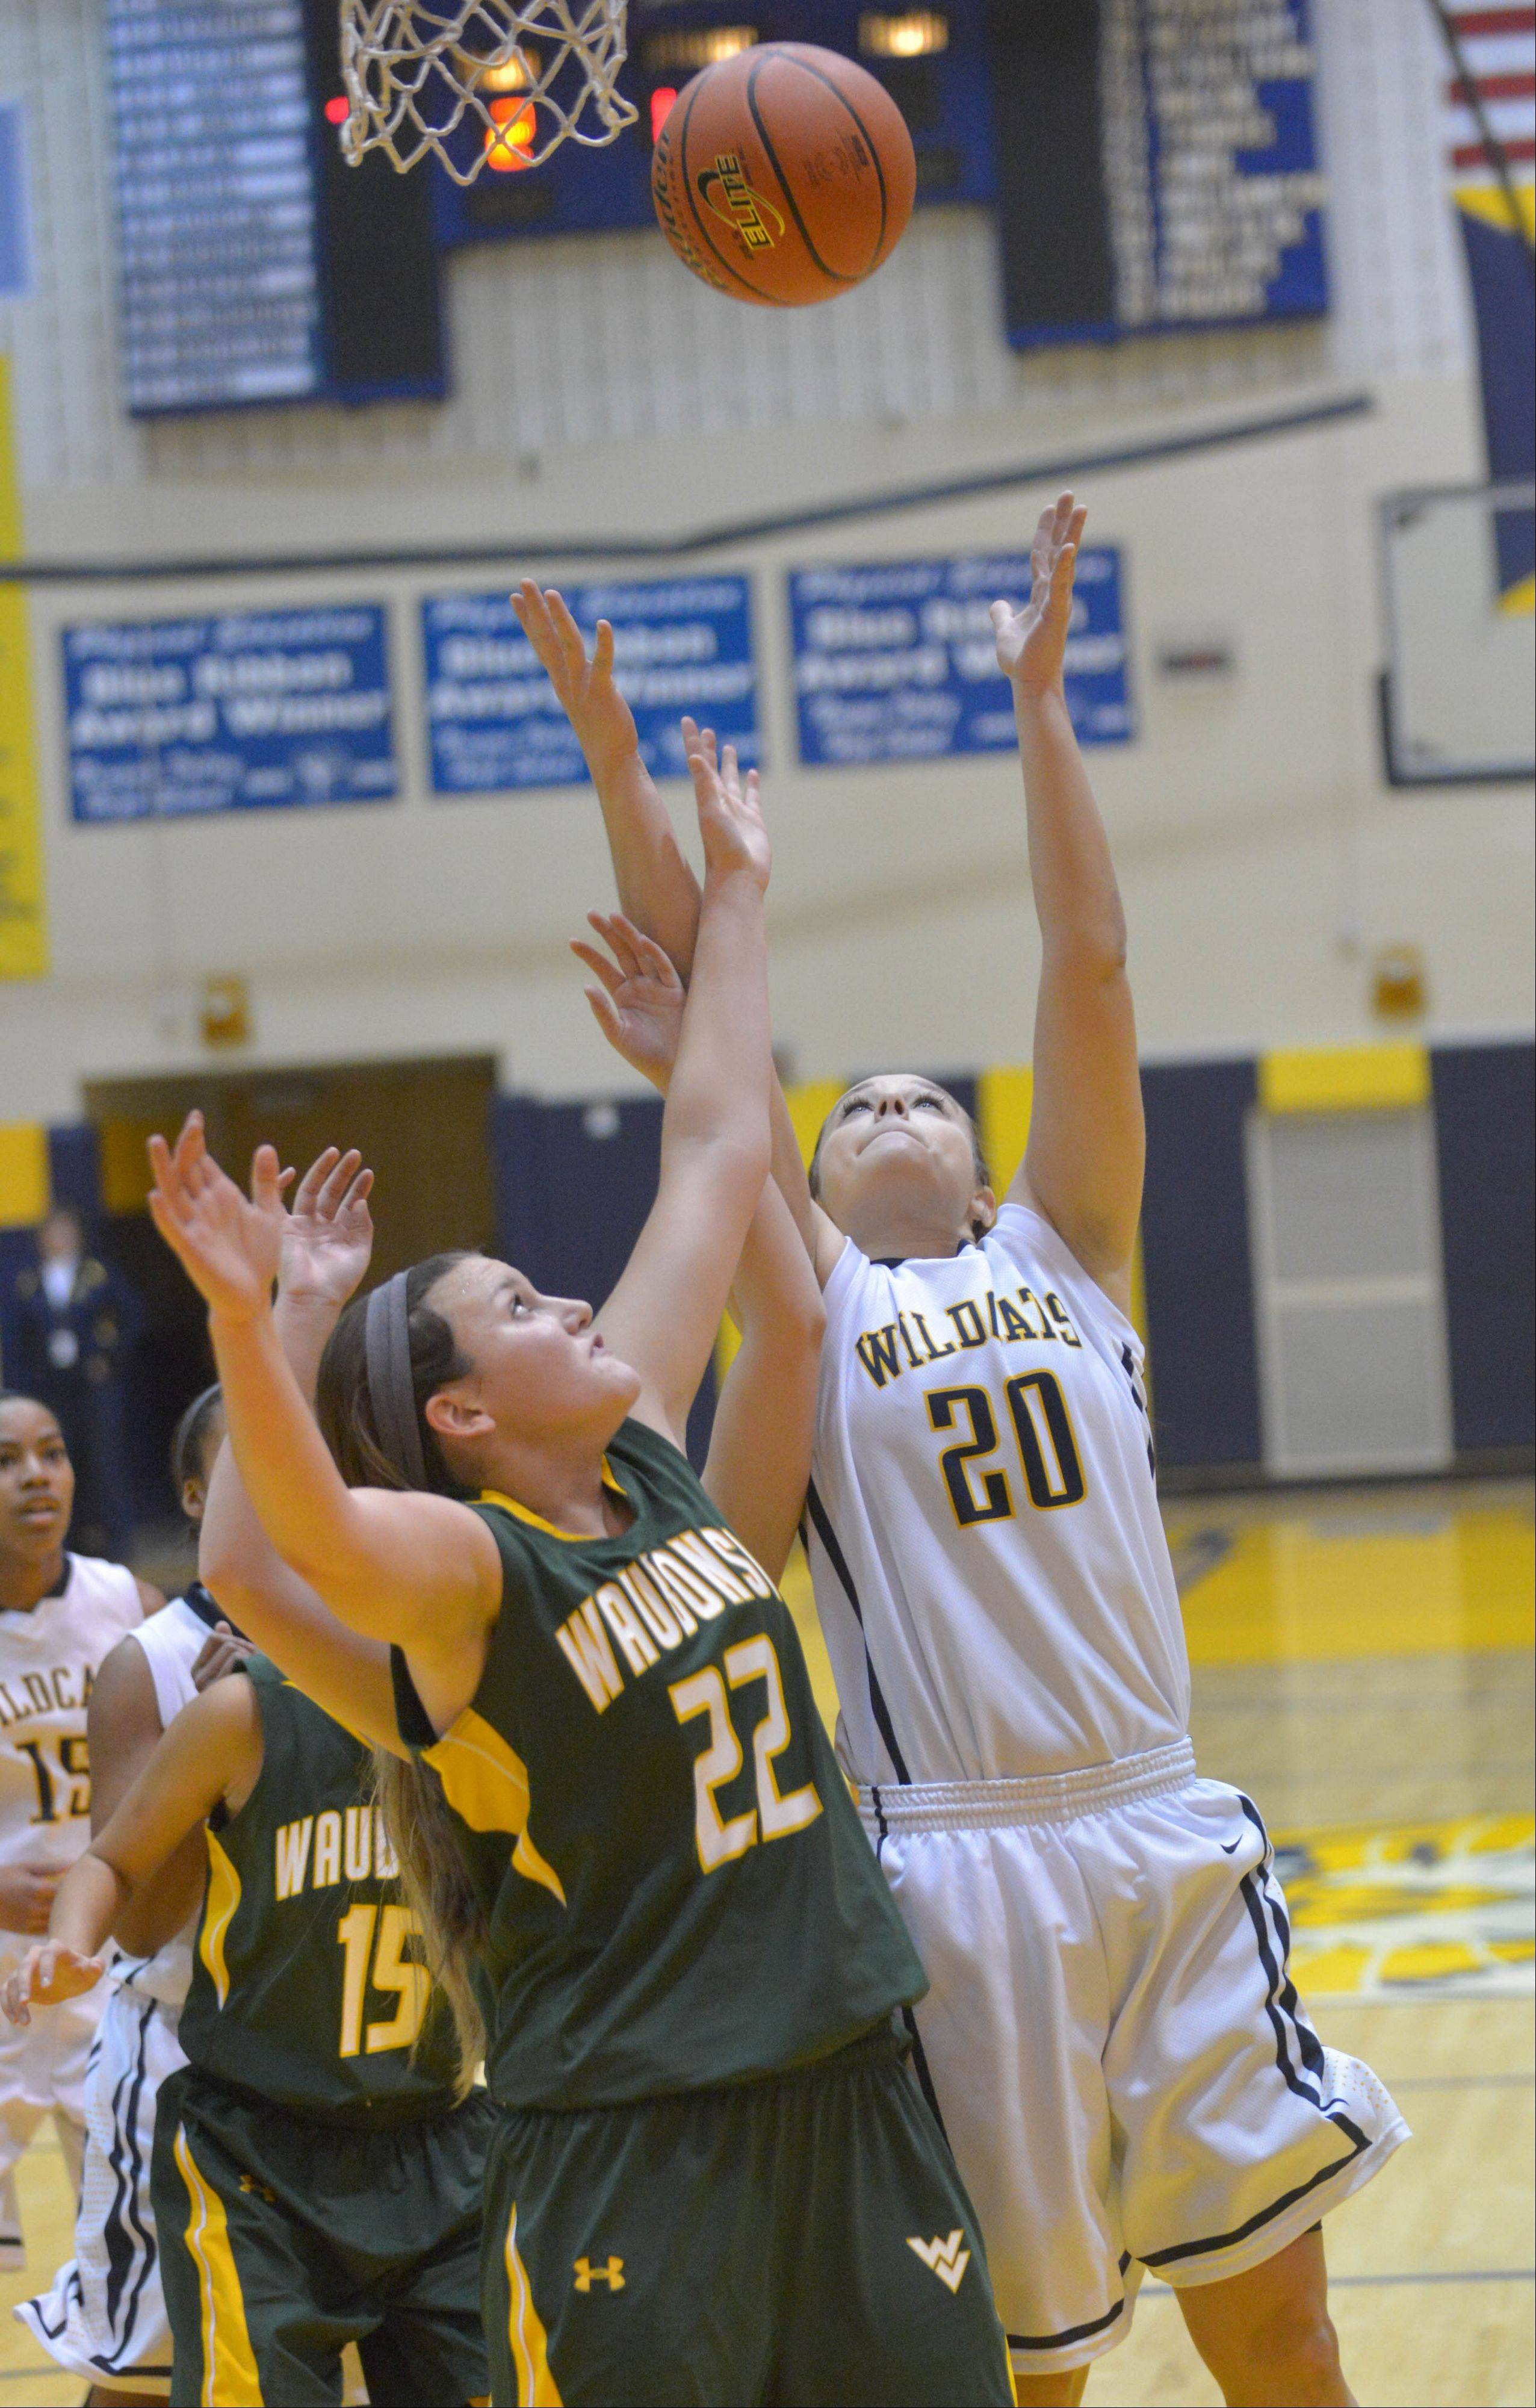 Jordan Masiak of Waubonsie, left, and Niki Lazar go for a rebound during the Waubonsie Valley at Neuqua Valley girls basketball game Saturday.